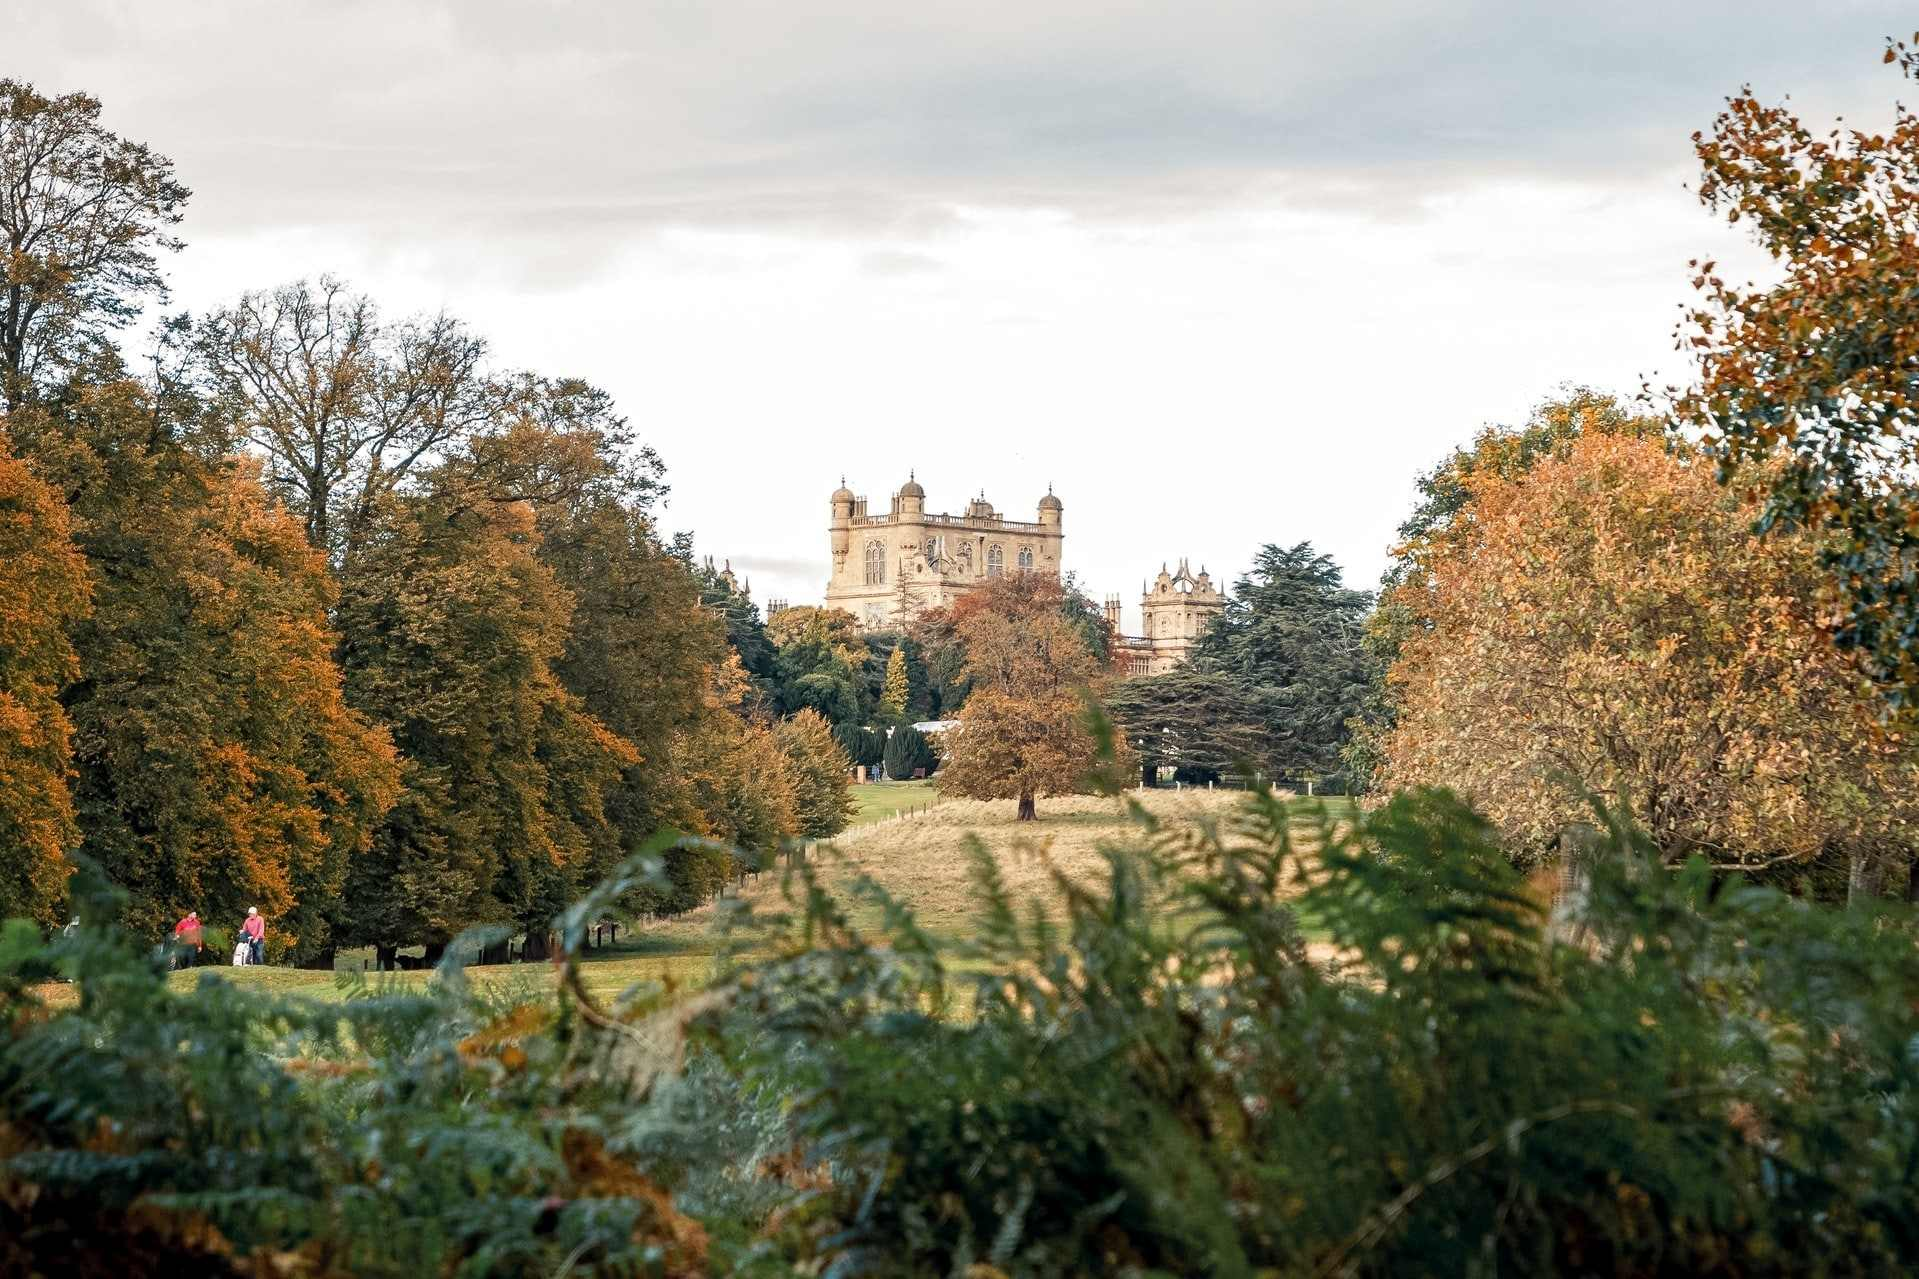 view-of-wollaton-hall-country-house-from-behind-bush-across-park